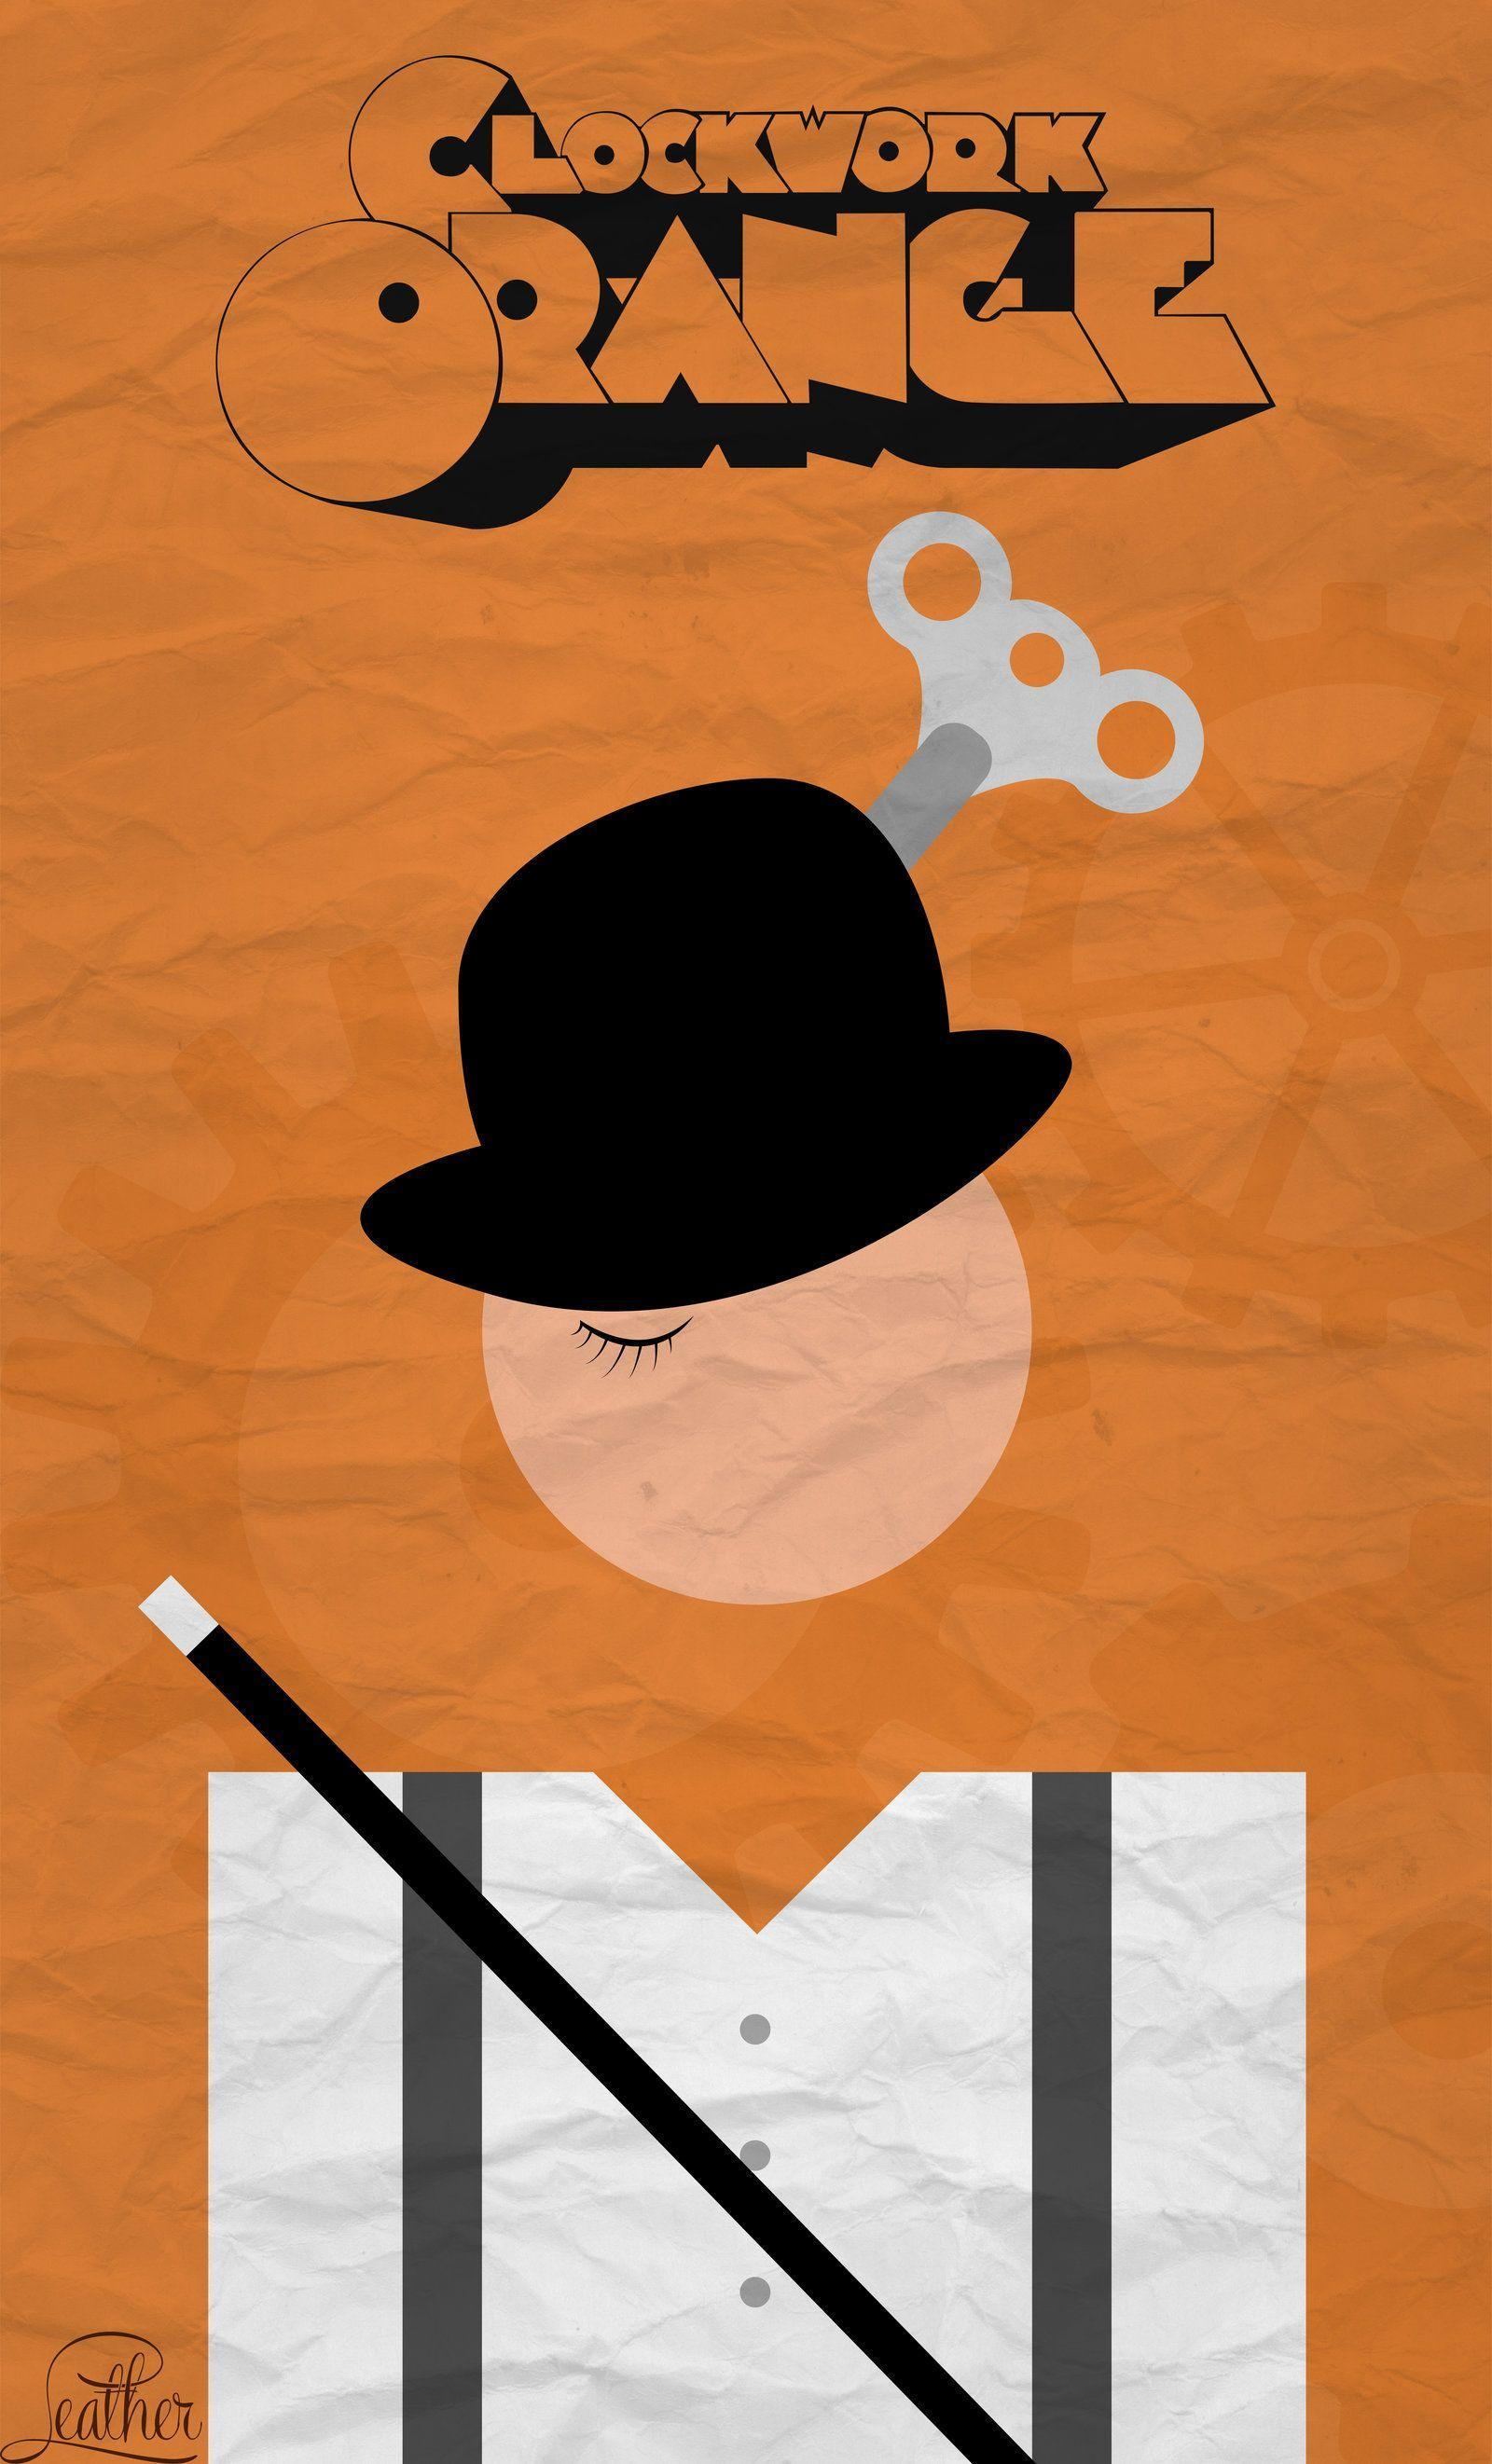 Clockwork Orange Poster - wallpaper.